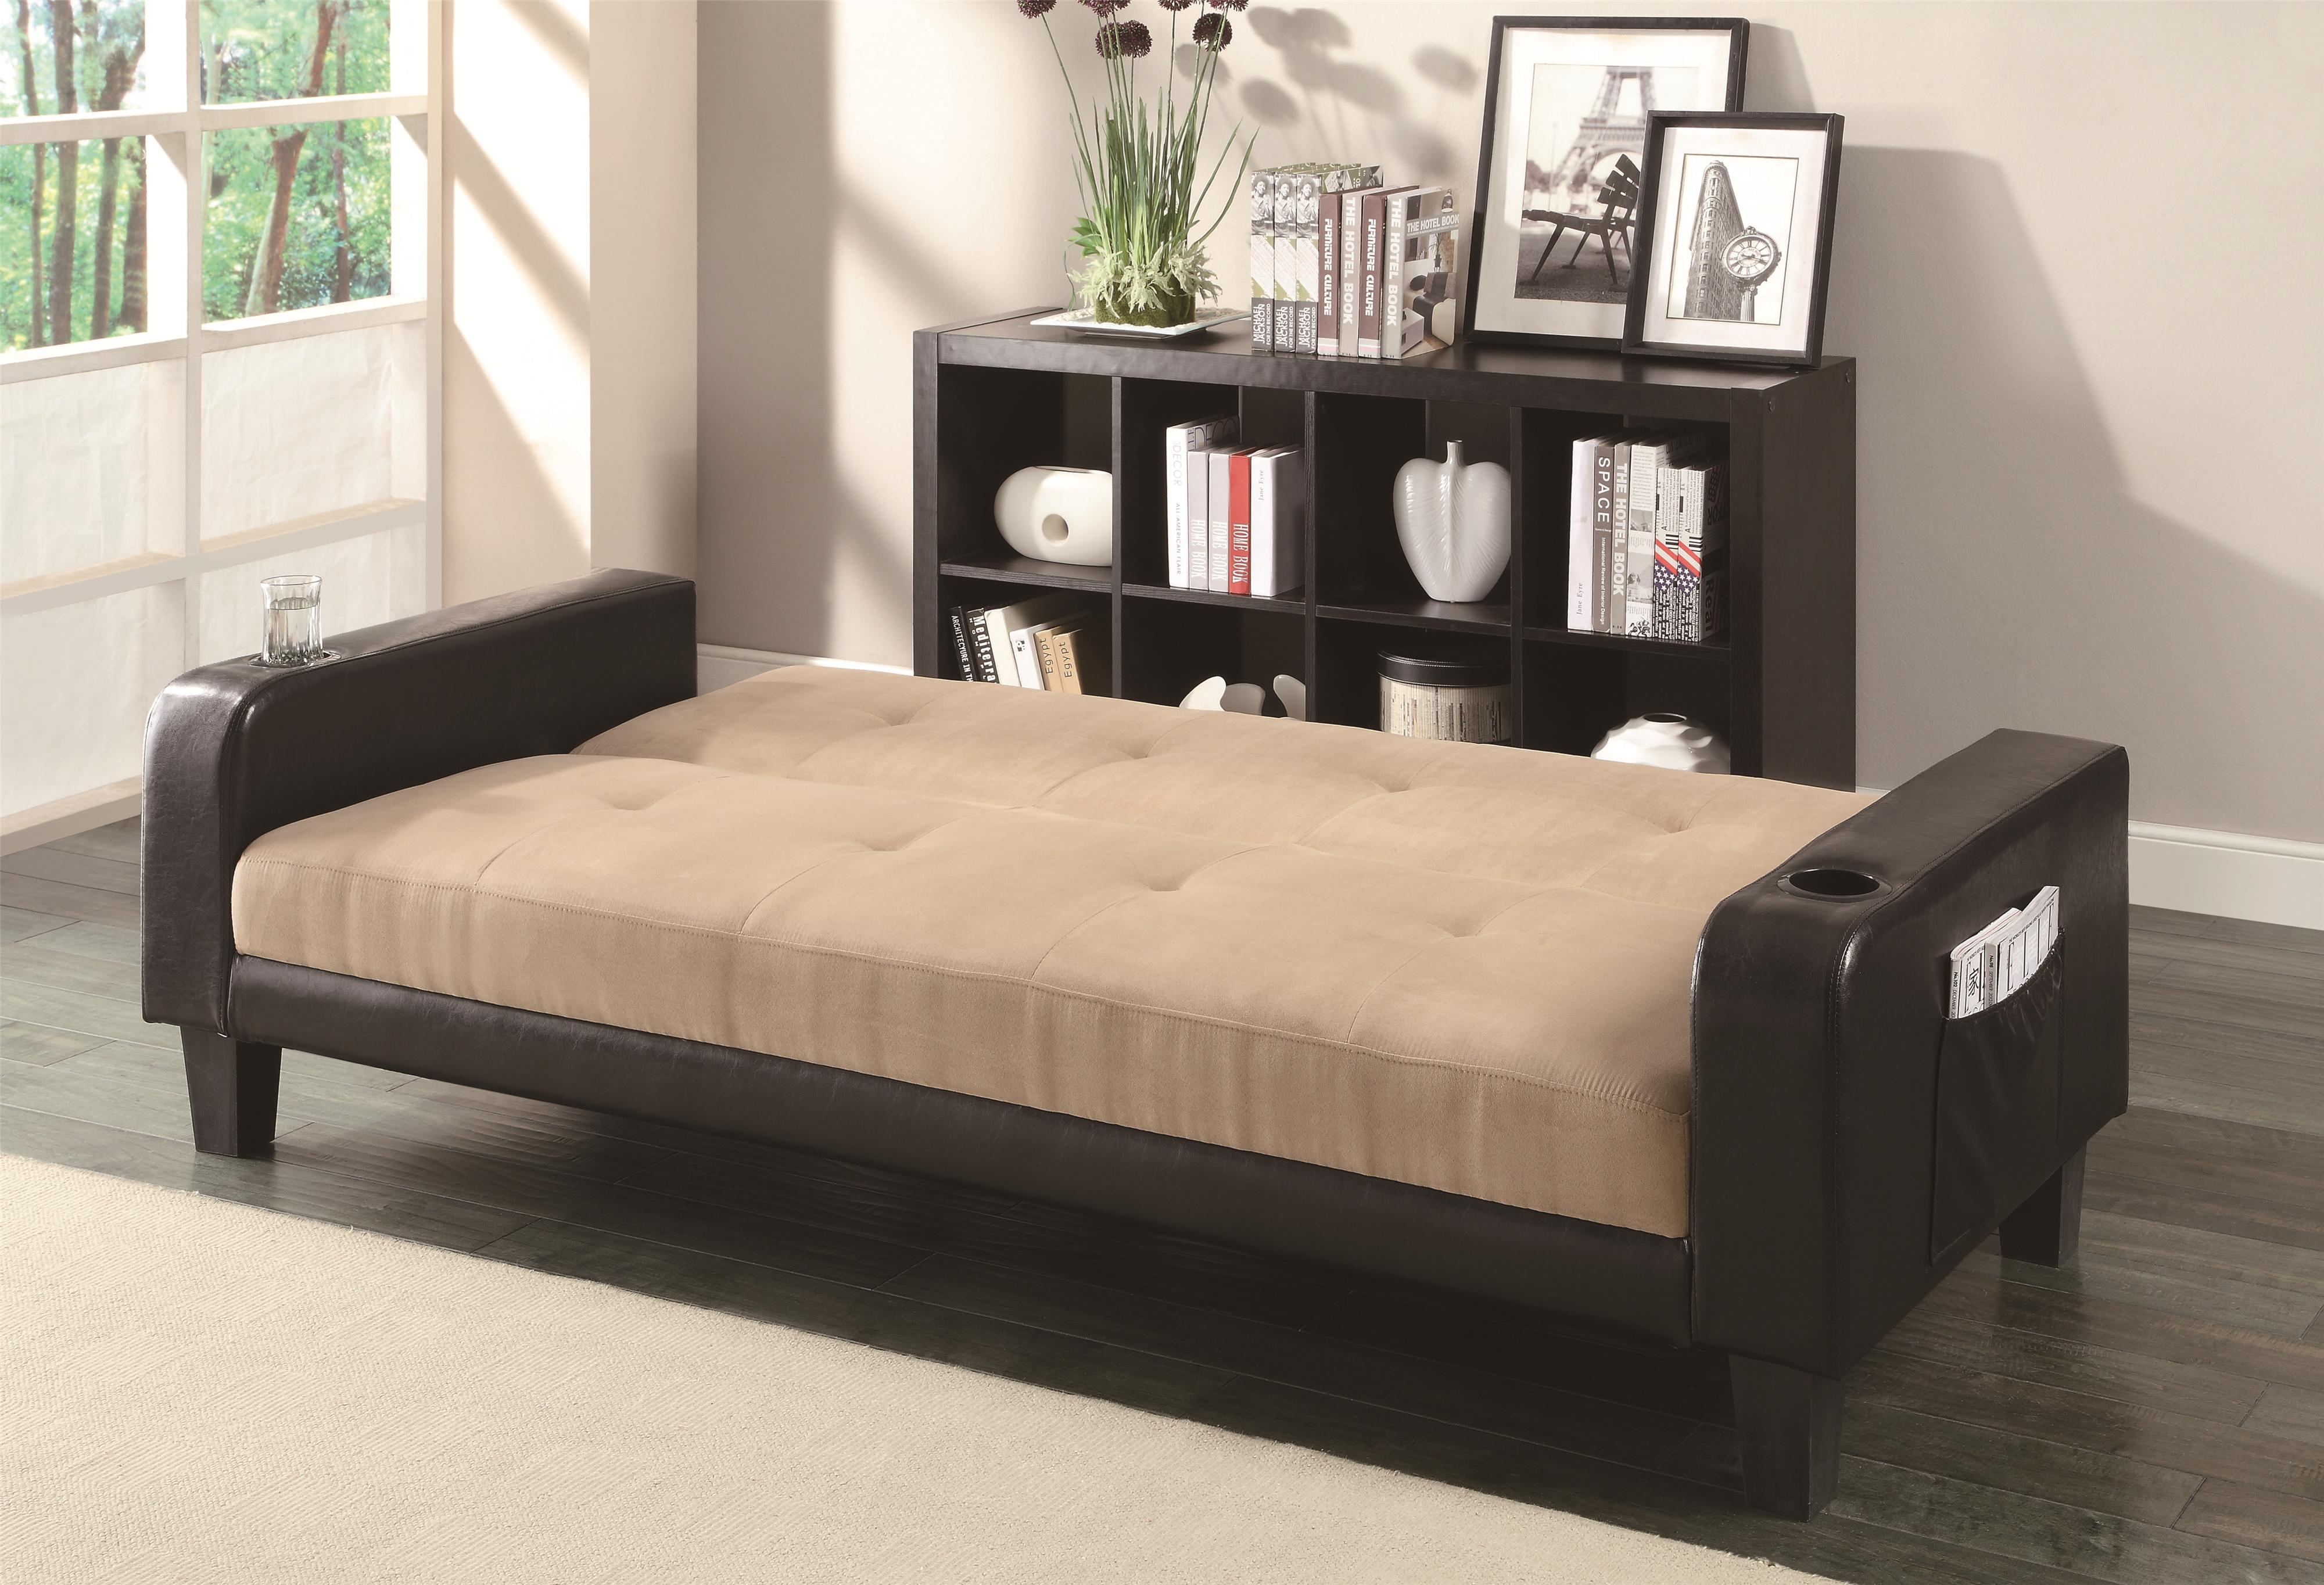 iowa w city daybed trundle futon shop frame product open nightfall